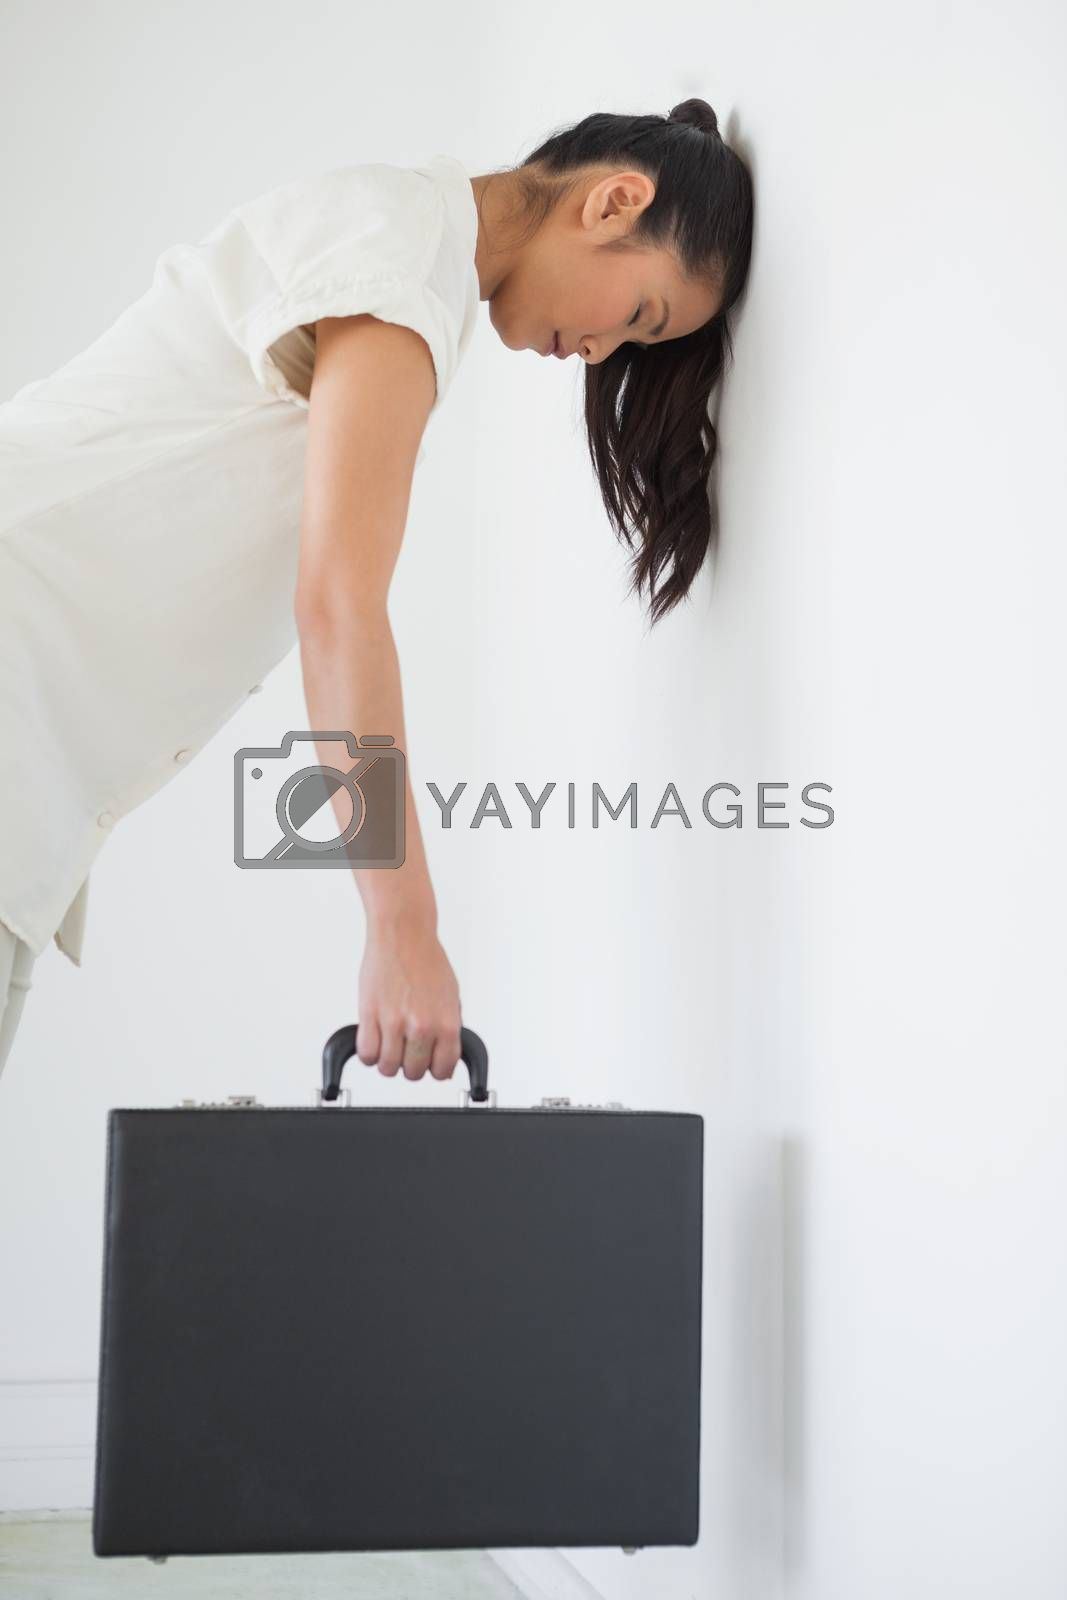 Royalty free image of Casual businesswoman leaning against wall with briefcase by Wavebreakmedia